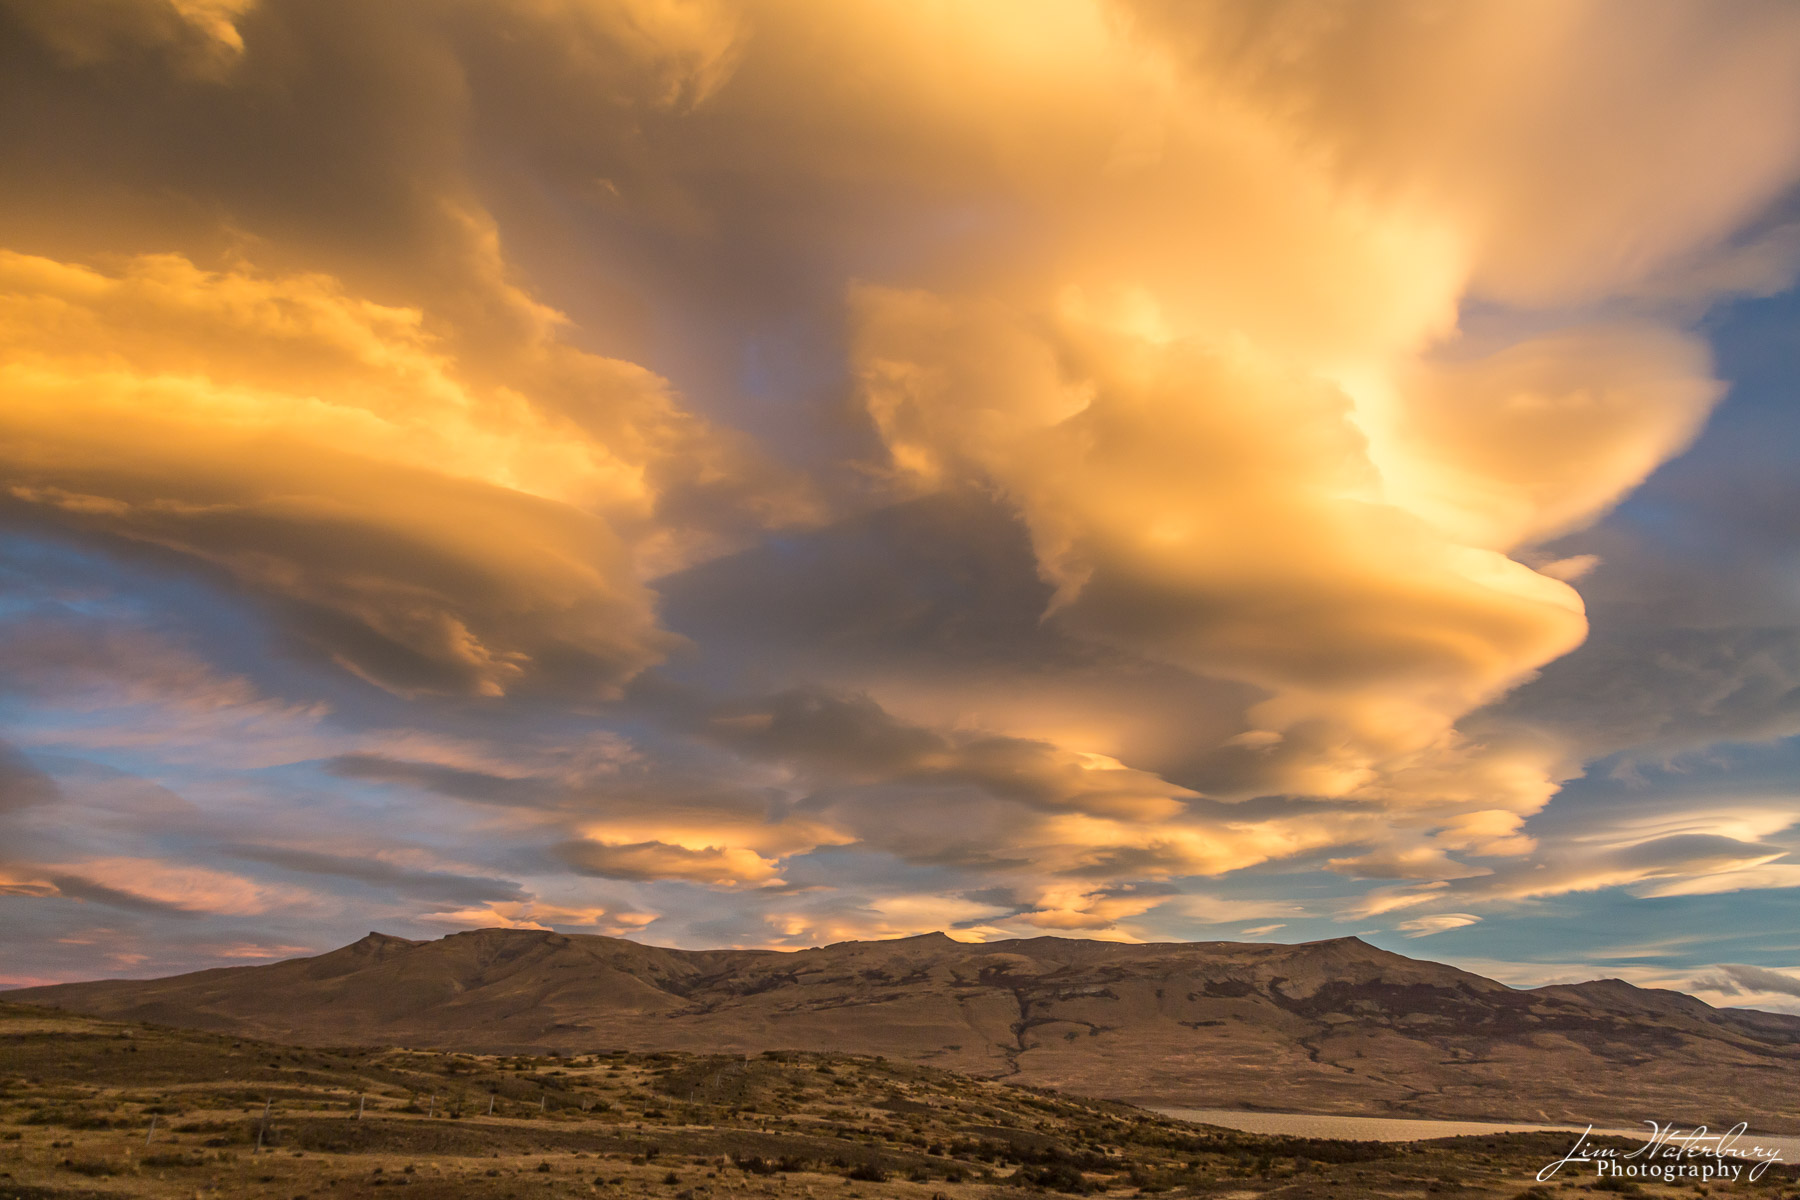 A series of lenticular clouds glow in the late afternoon sun in Torres del Paine National Park, Patagonia.